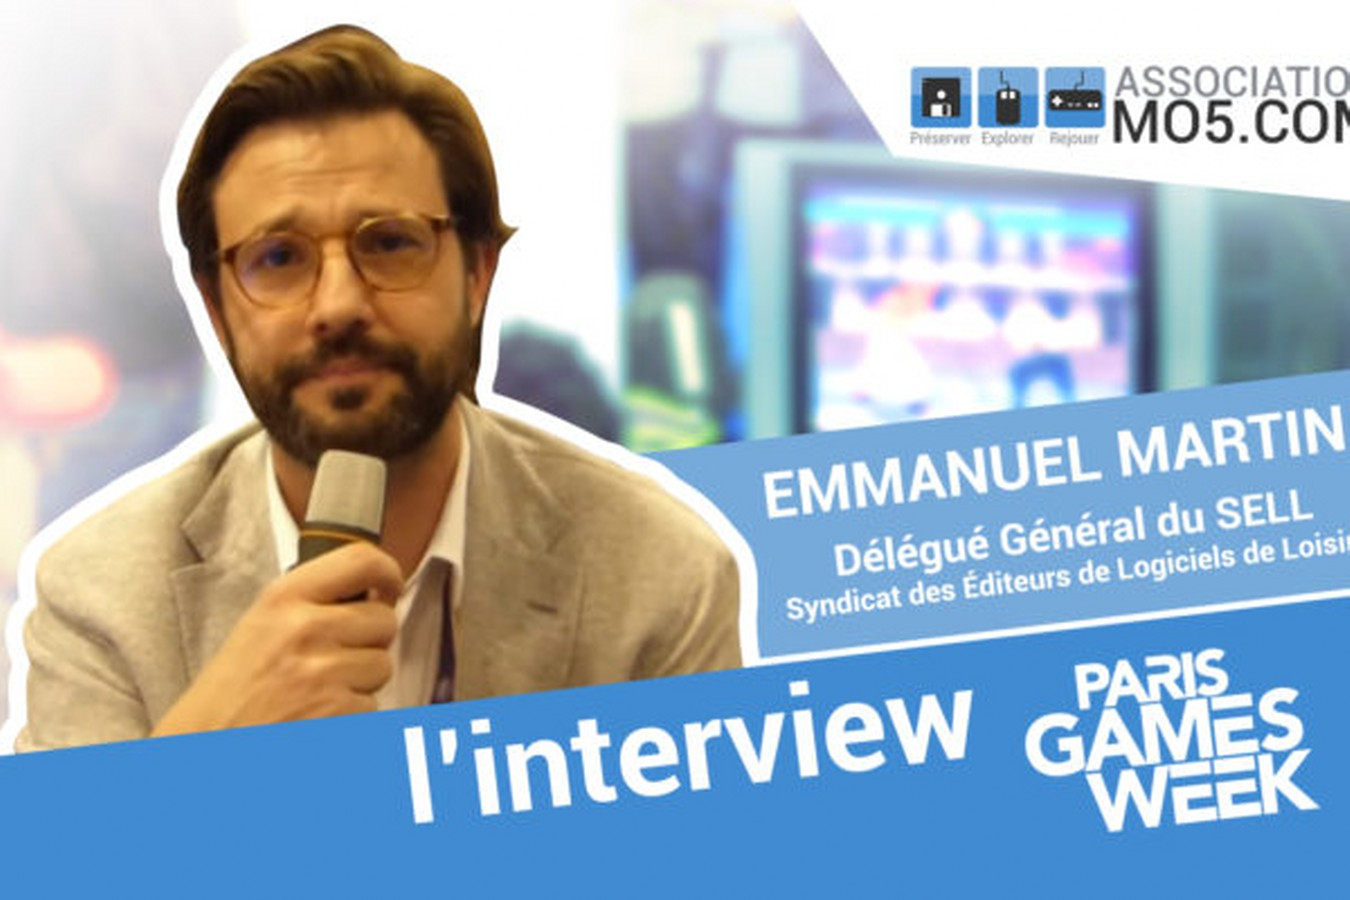 InterviewPGW19 EMARTIN